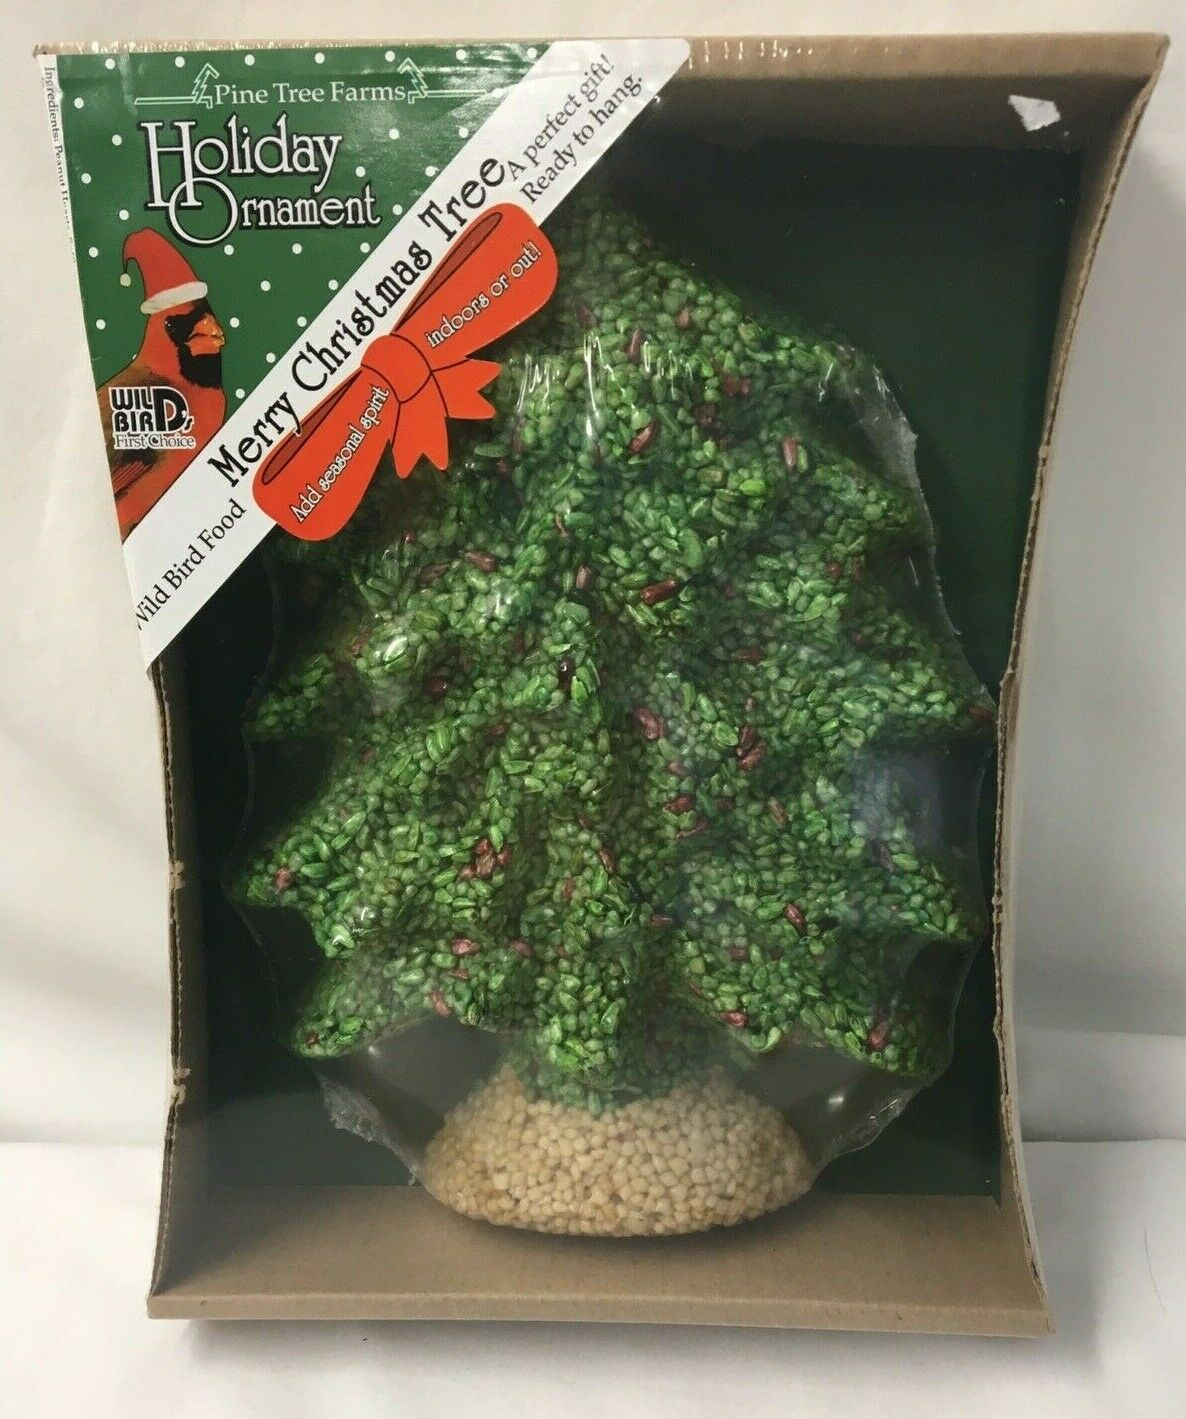 pine tree farms wild bird food merry christmas seed tree hanging 22 oz usa made for sale online ebay